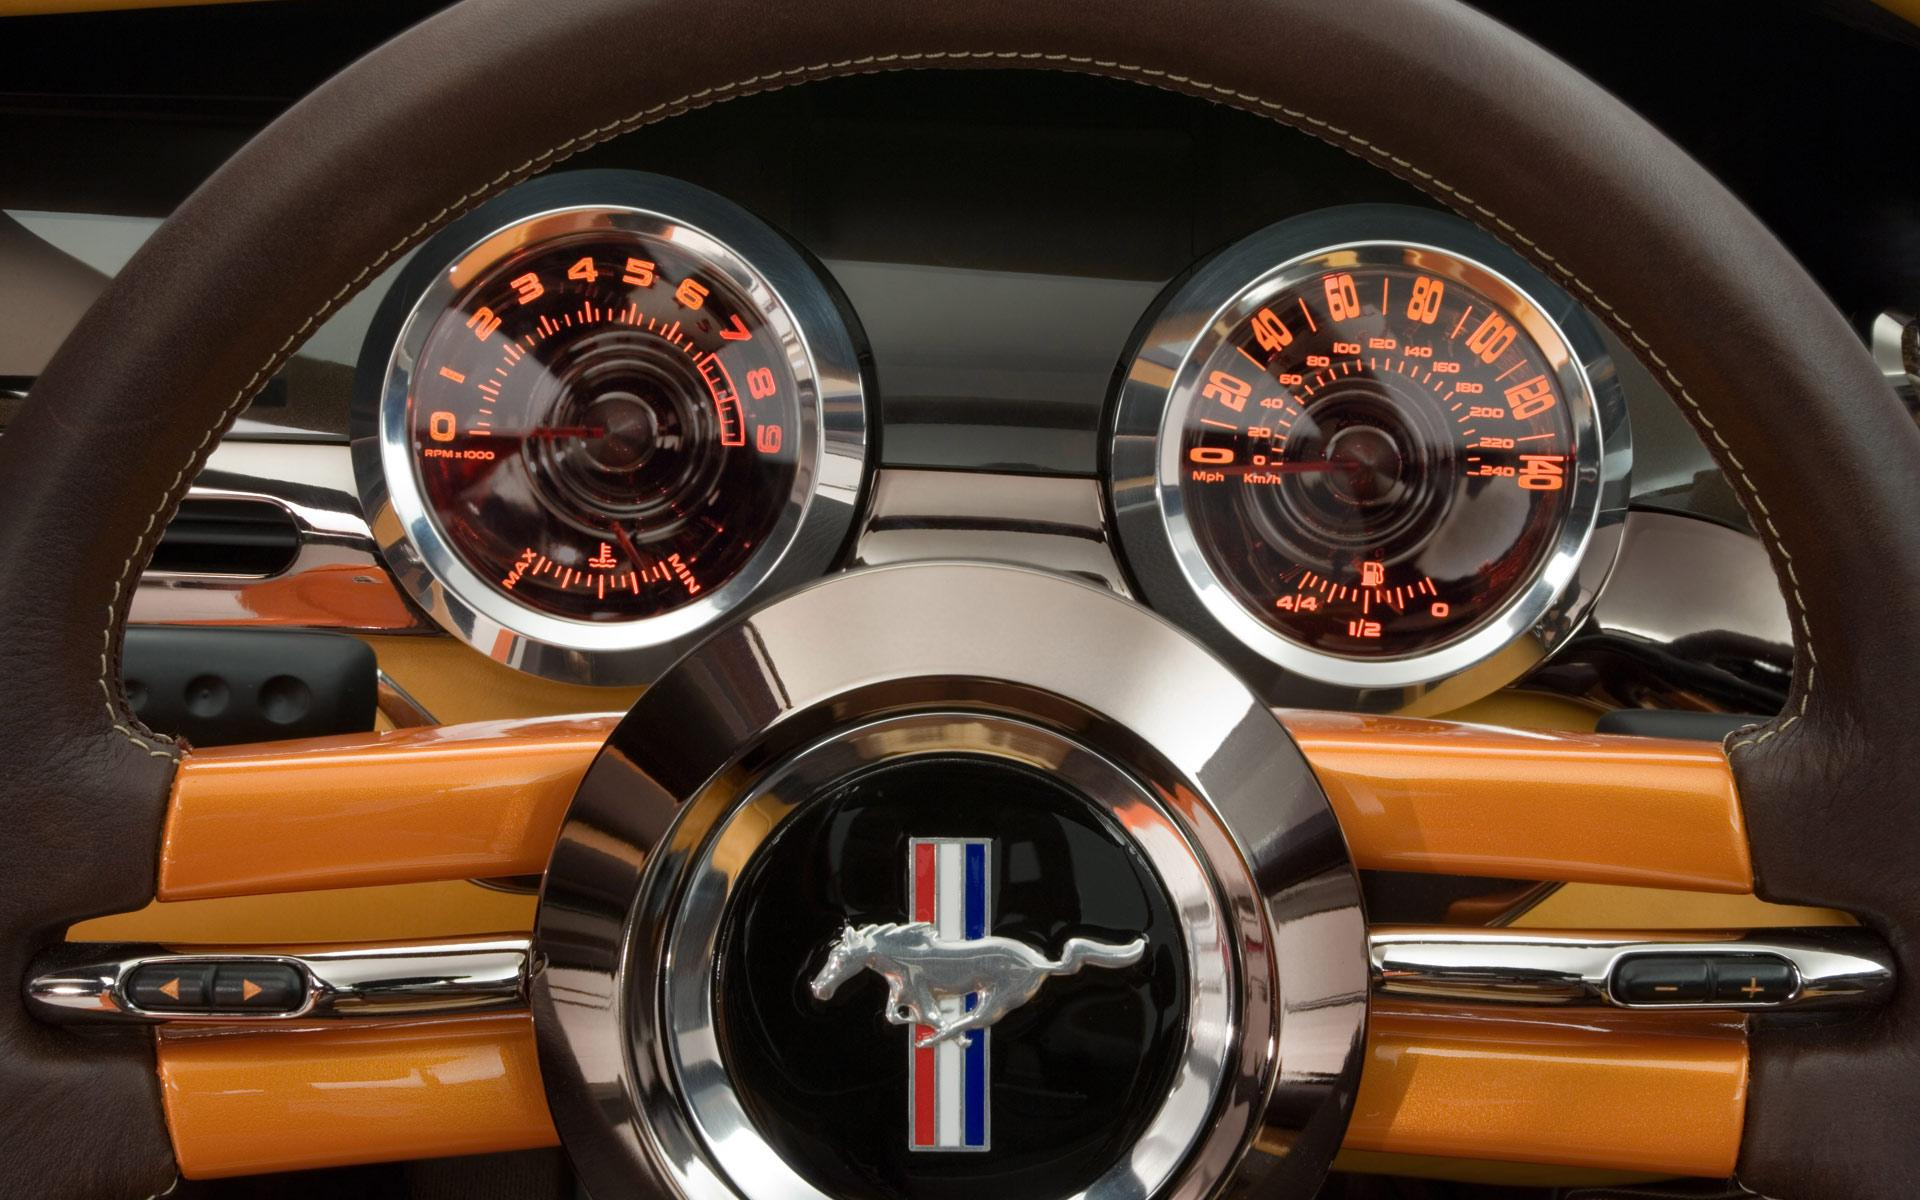 Ford Mustang Wallpapers » Animaatjes.nl